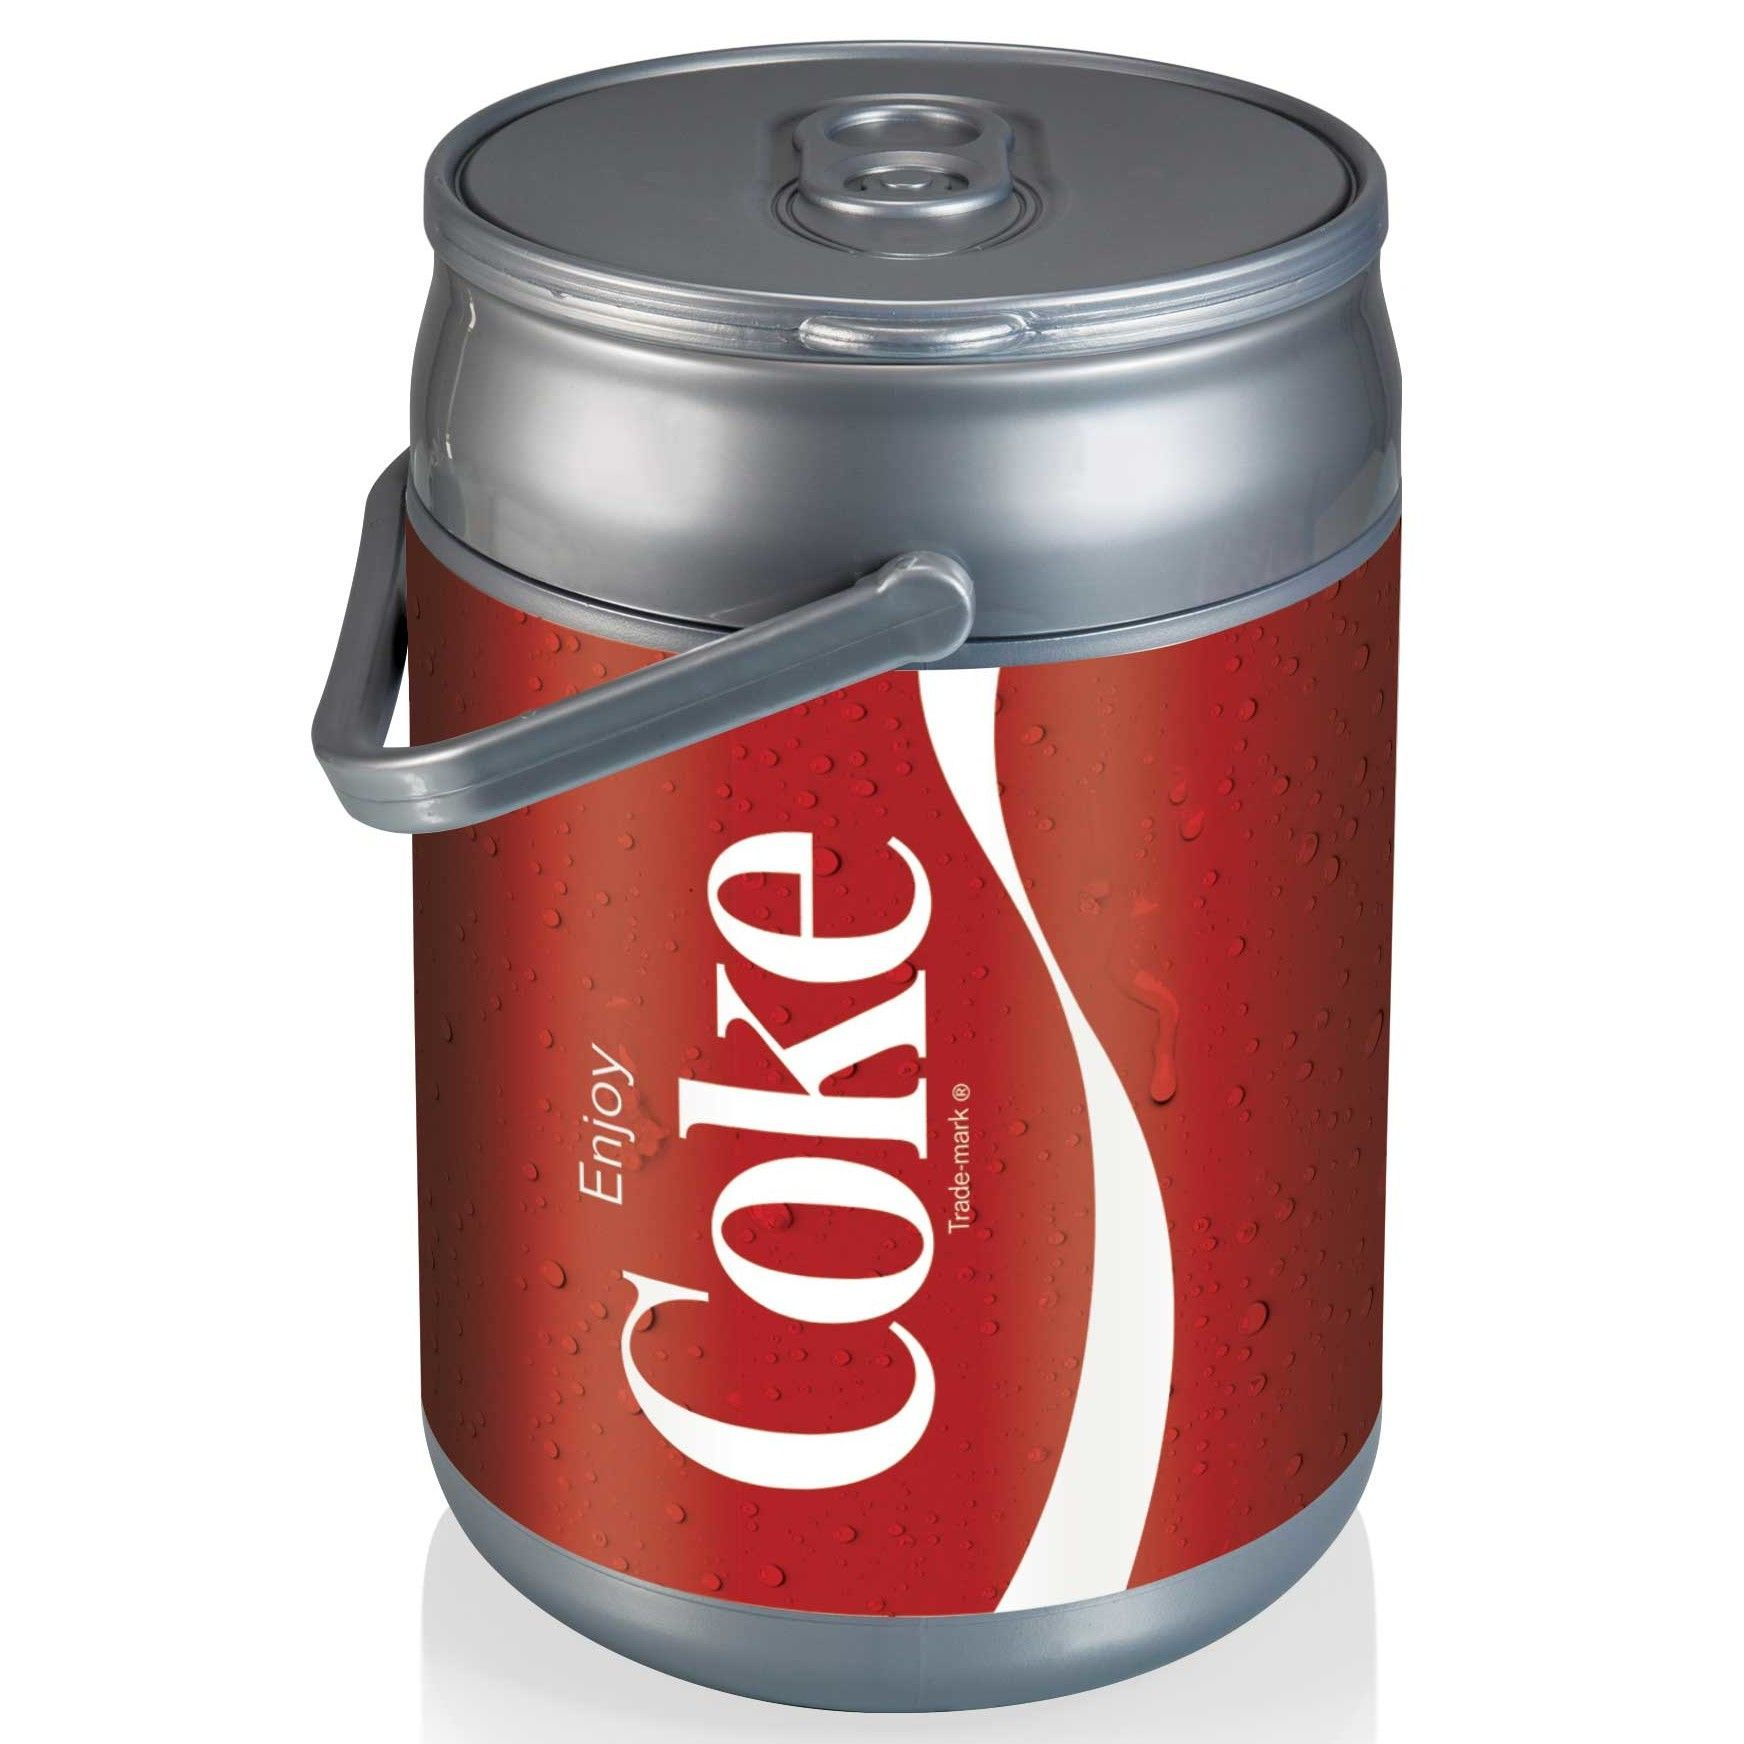 Coca-Cola (Enjoy Coke Design) Can Cooler